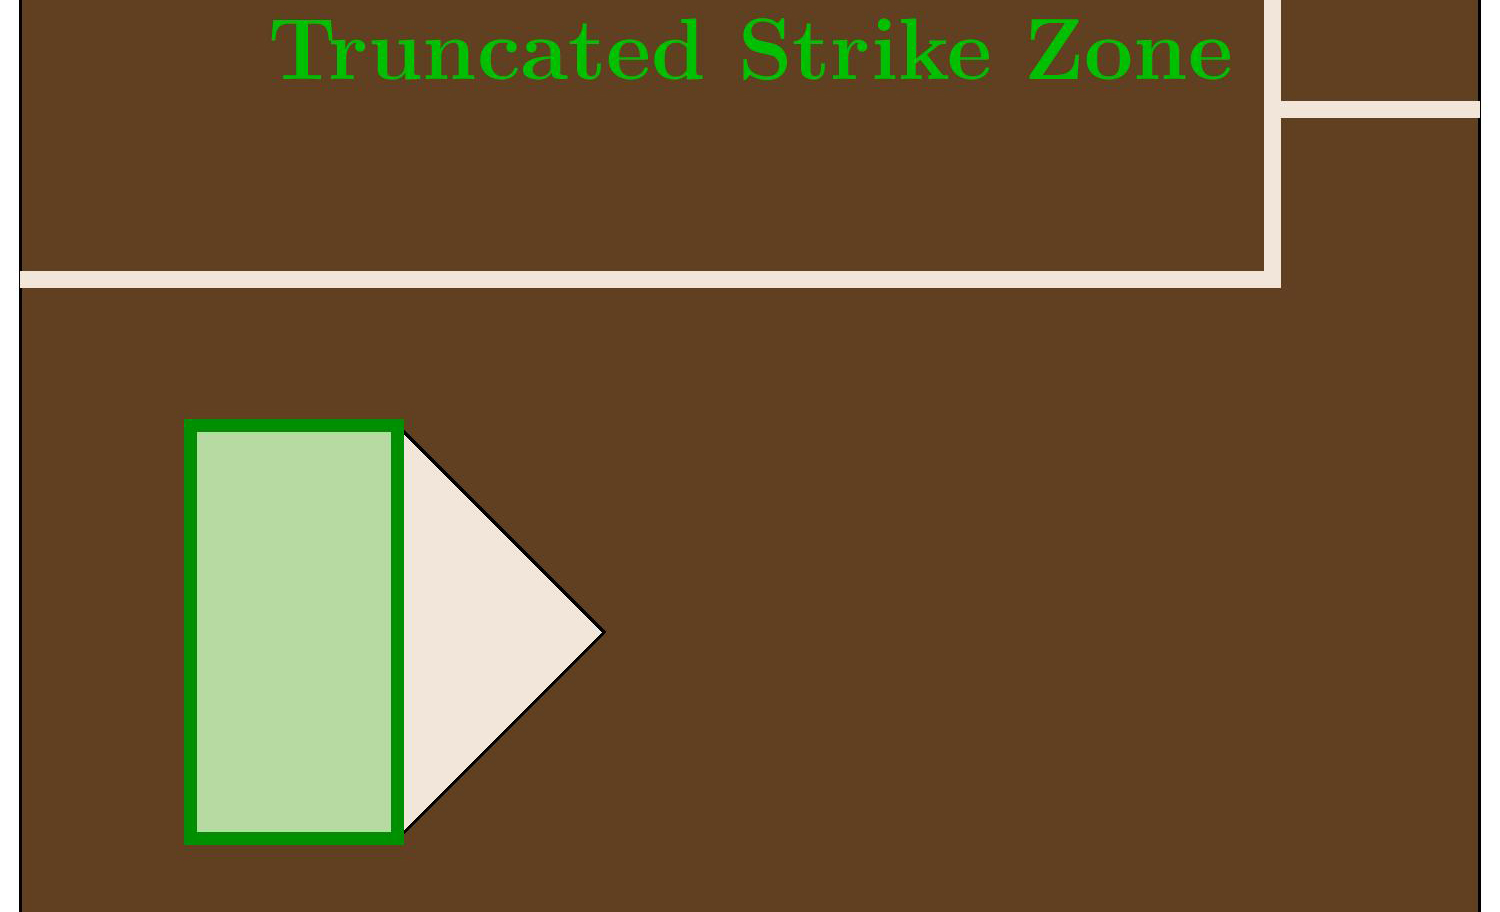 This is an example of the truncated strike zone.